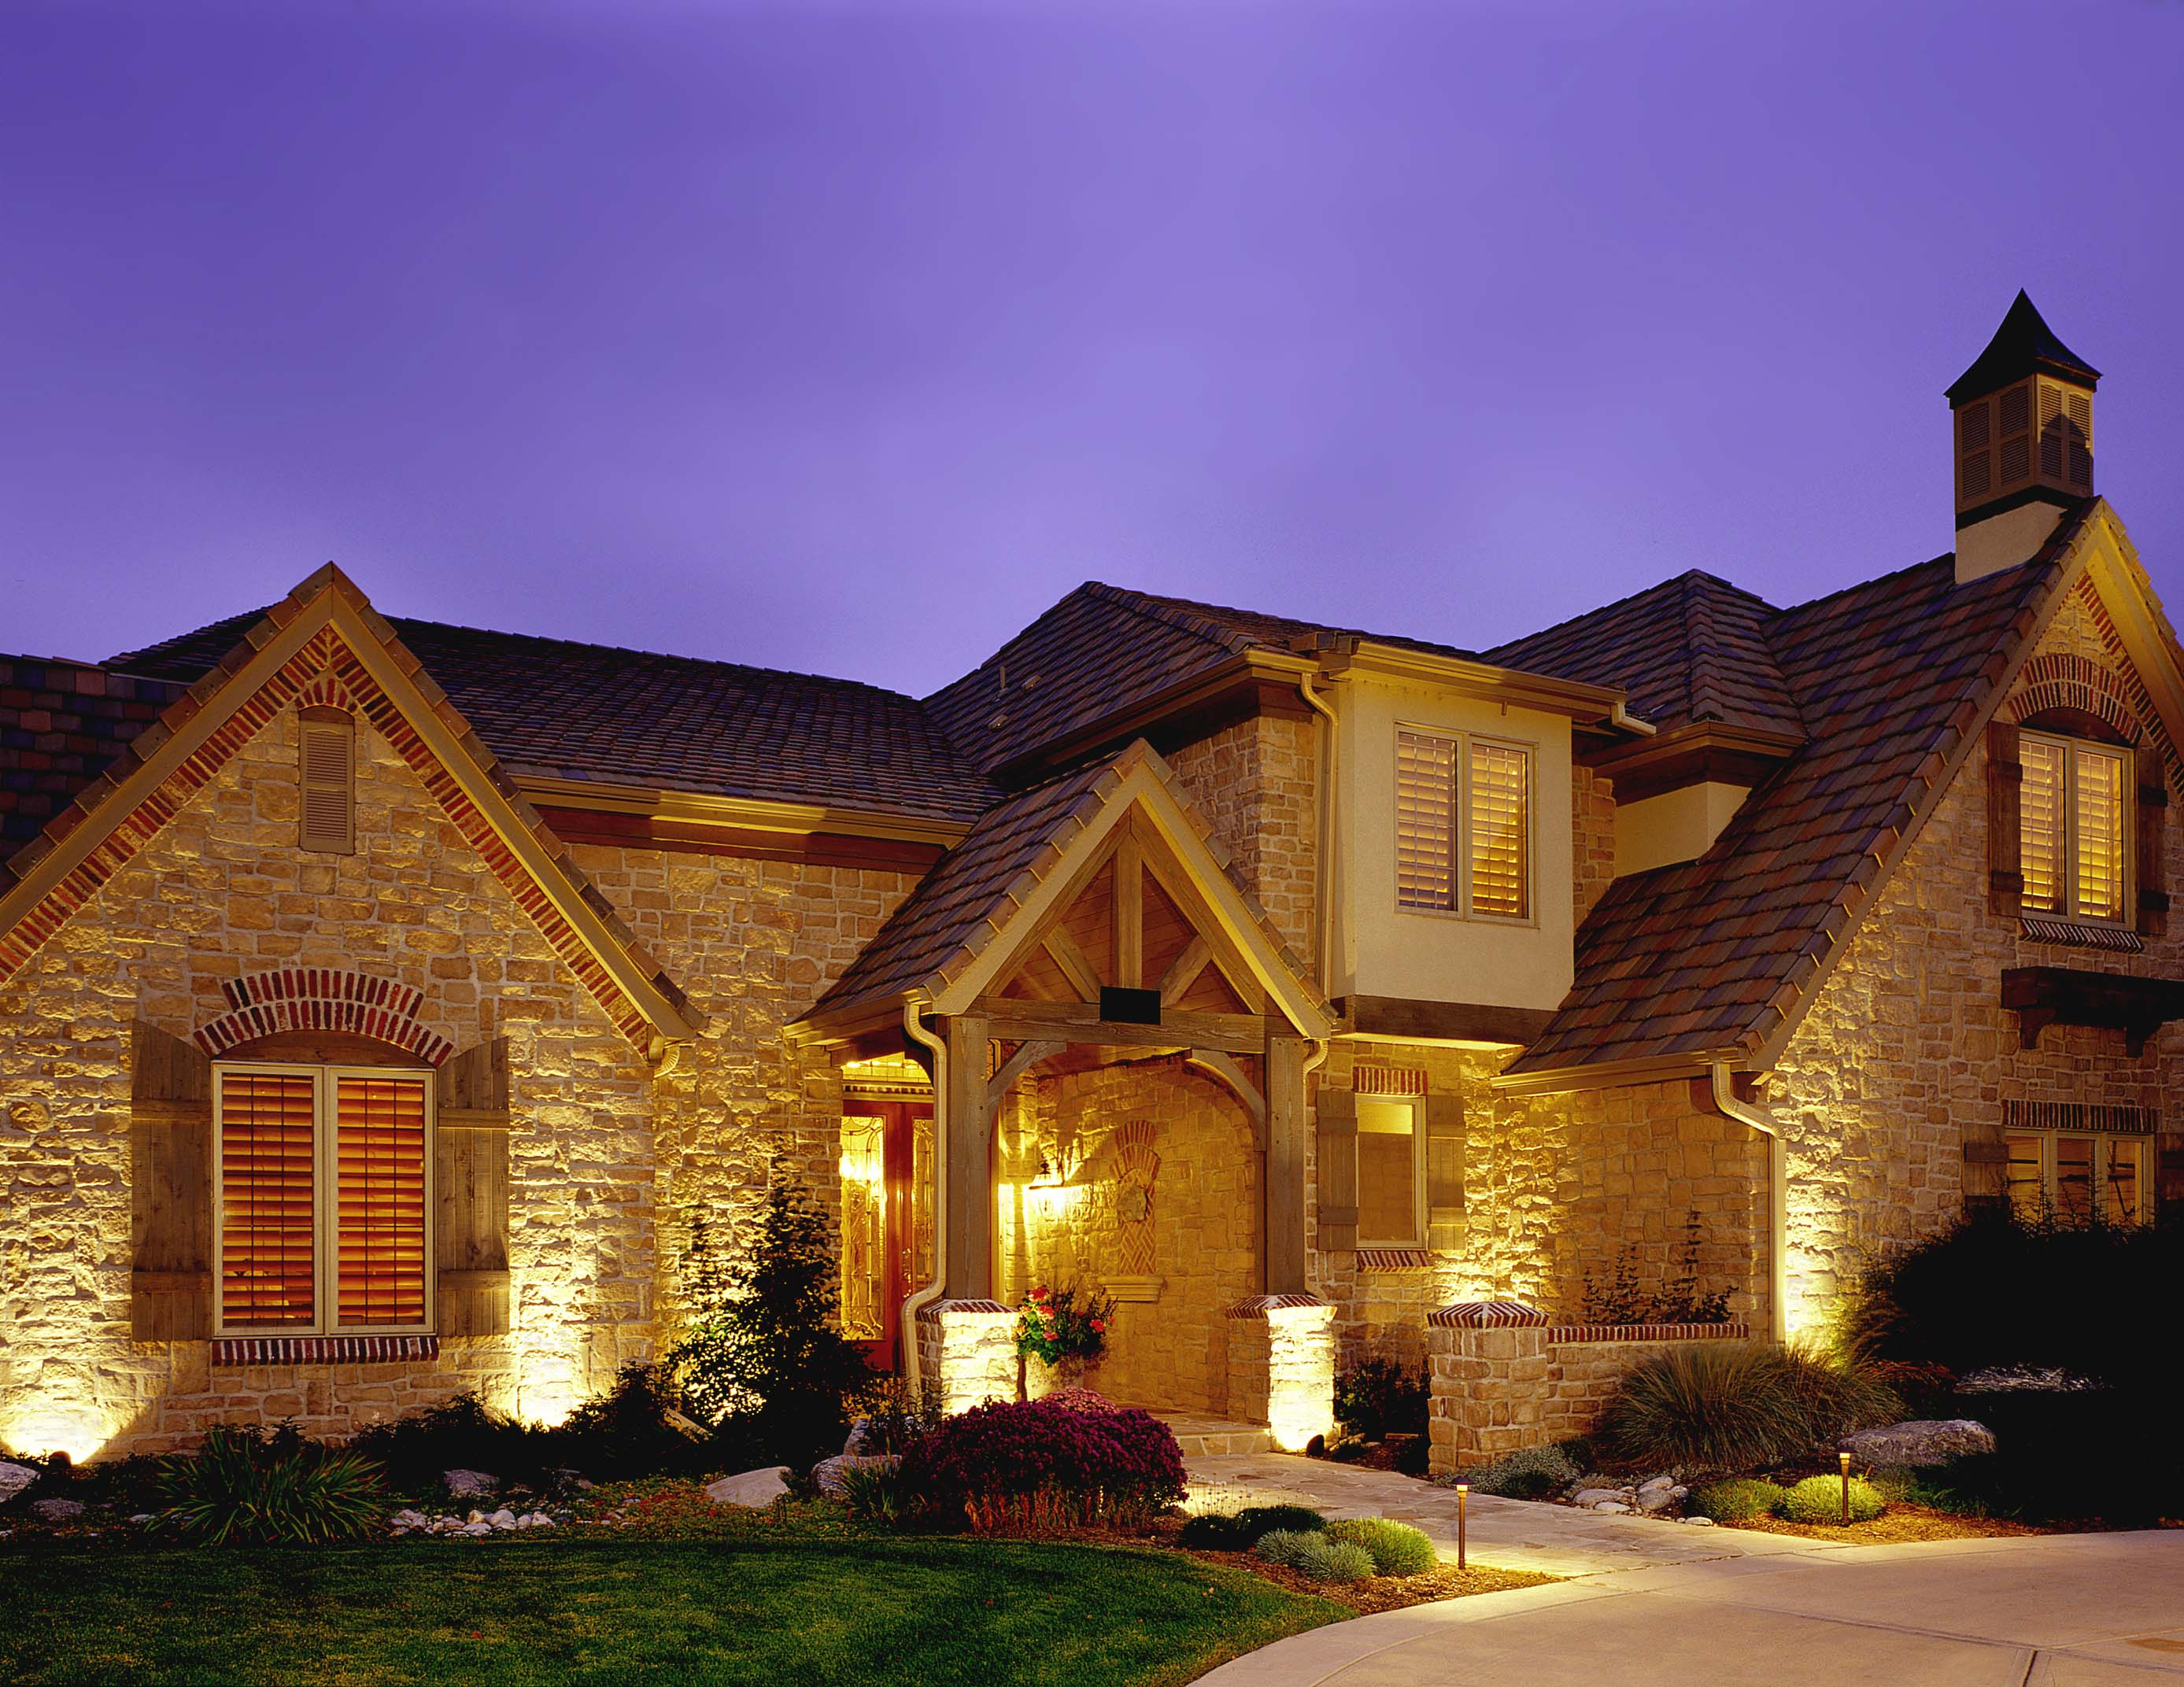 The Preserve in Greenwood Village home with outdoor architectural lighting. This house exemplifies Colorado architecture and it comes to life after dark with Outdoor Lighting Perspectives' (OLP) low voltage quartz halogen lighting system. Notice how the natural stone and wood beams are warmly illuminated by up-lighting the façade of the house with well lights.